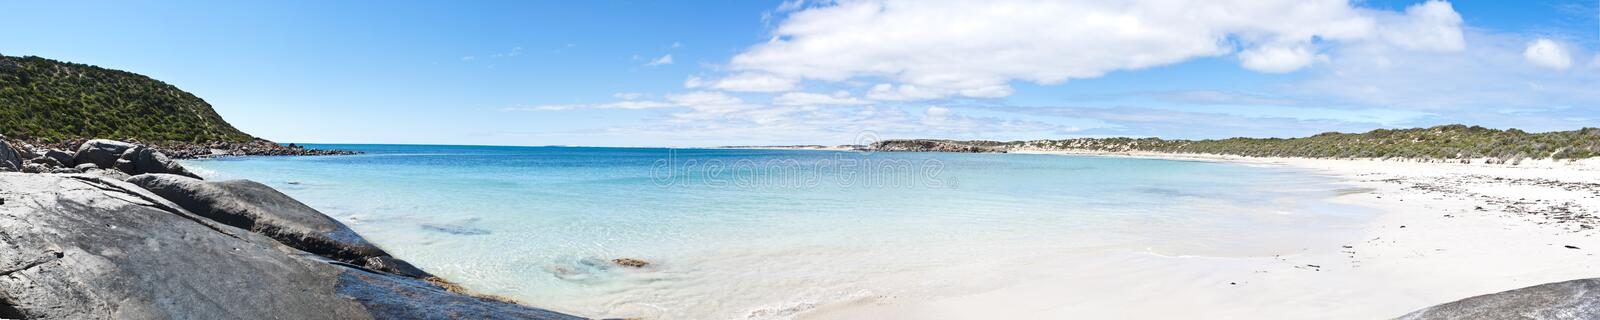 Grand panorama blanc de plage de sable photos stock